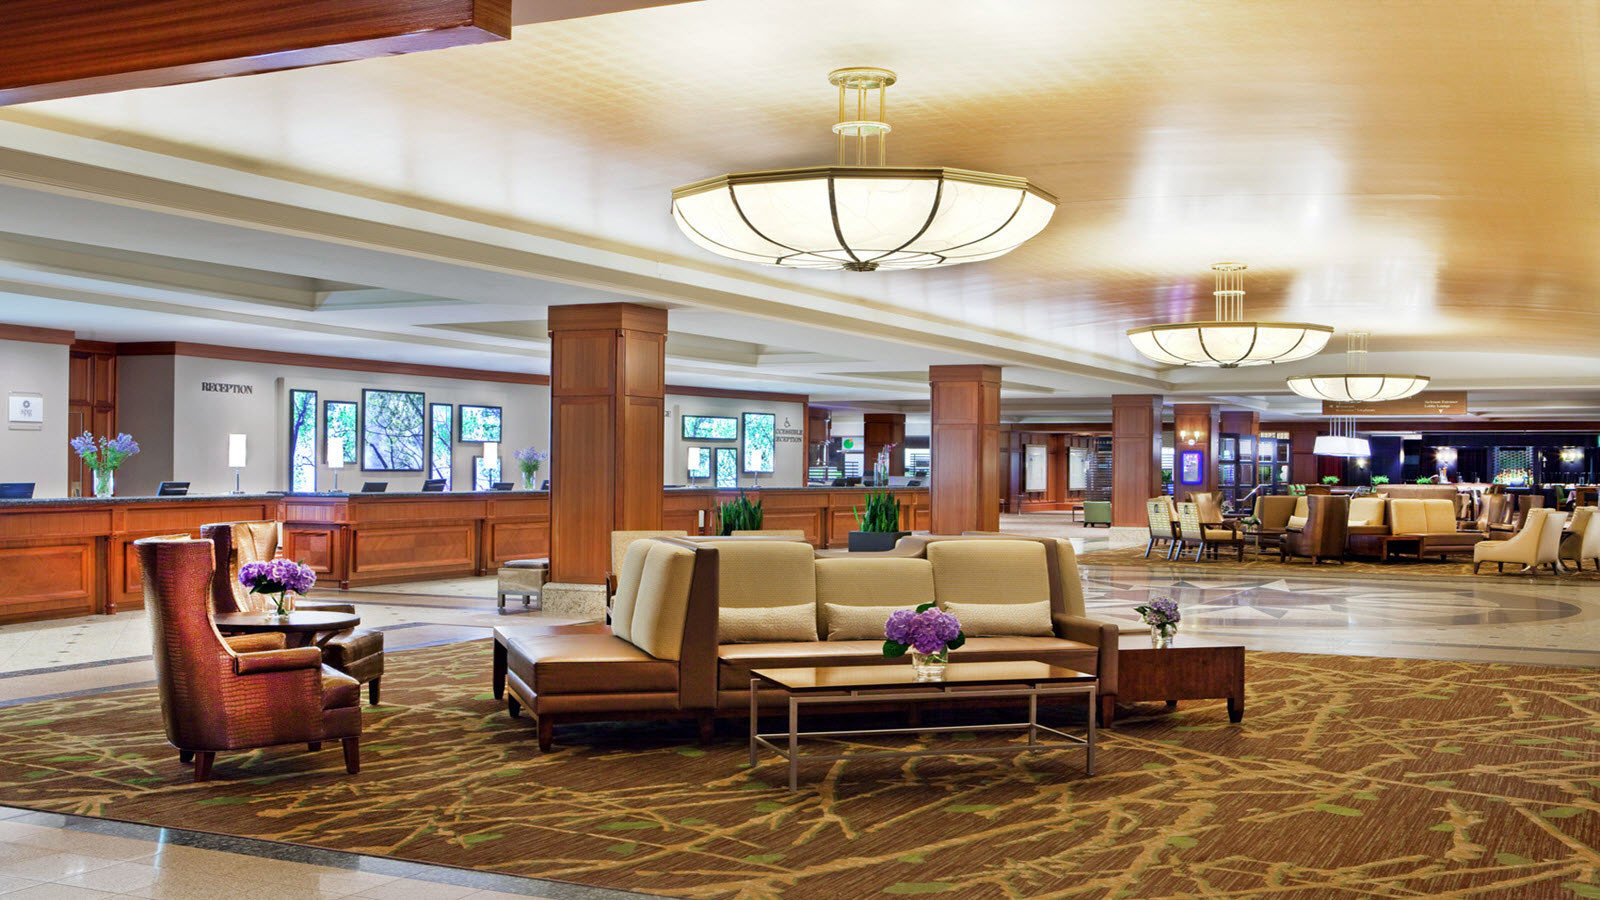 Lobby property living room home Resort condominium mansion